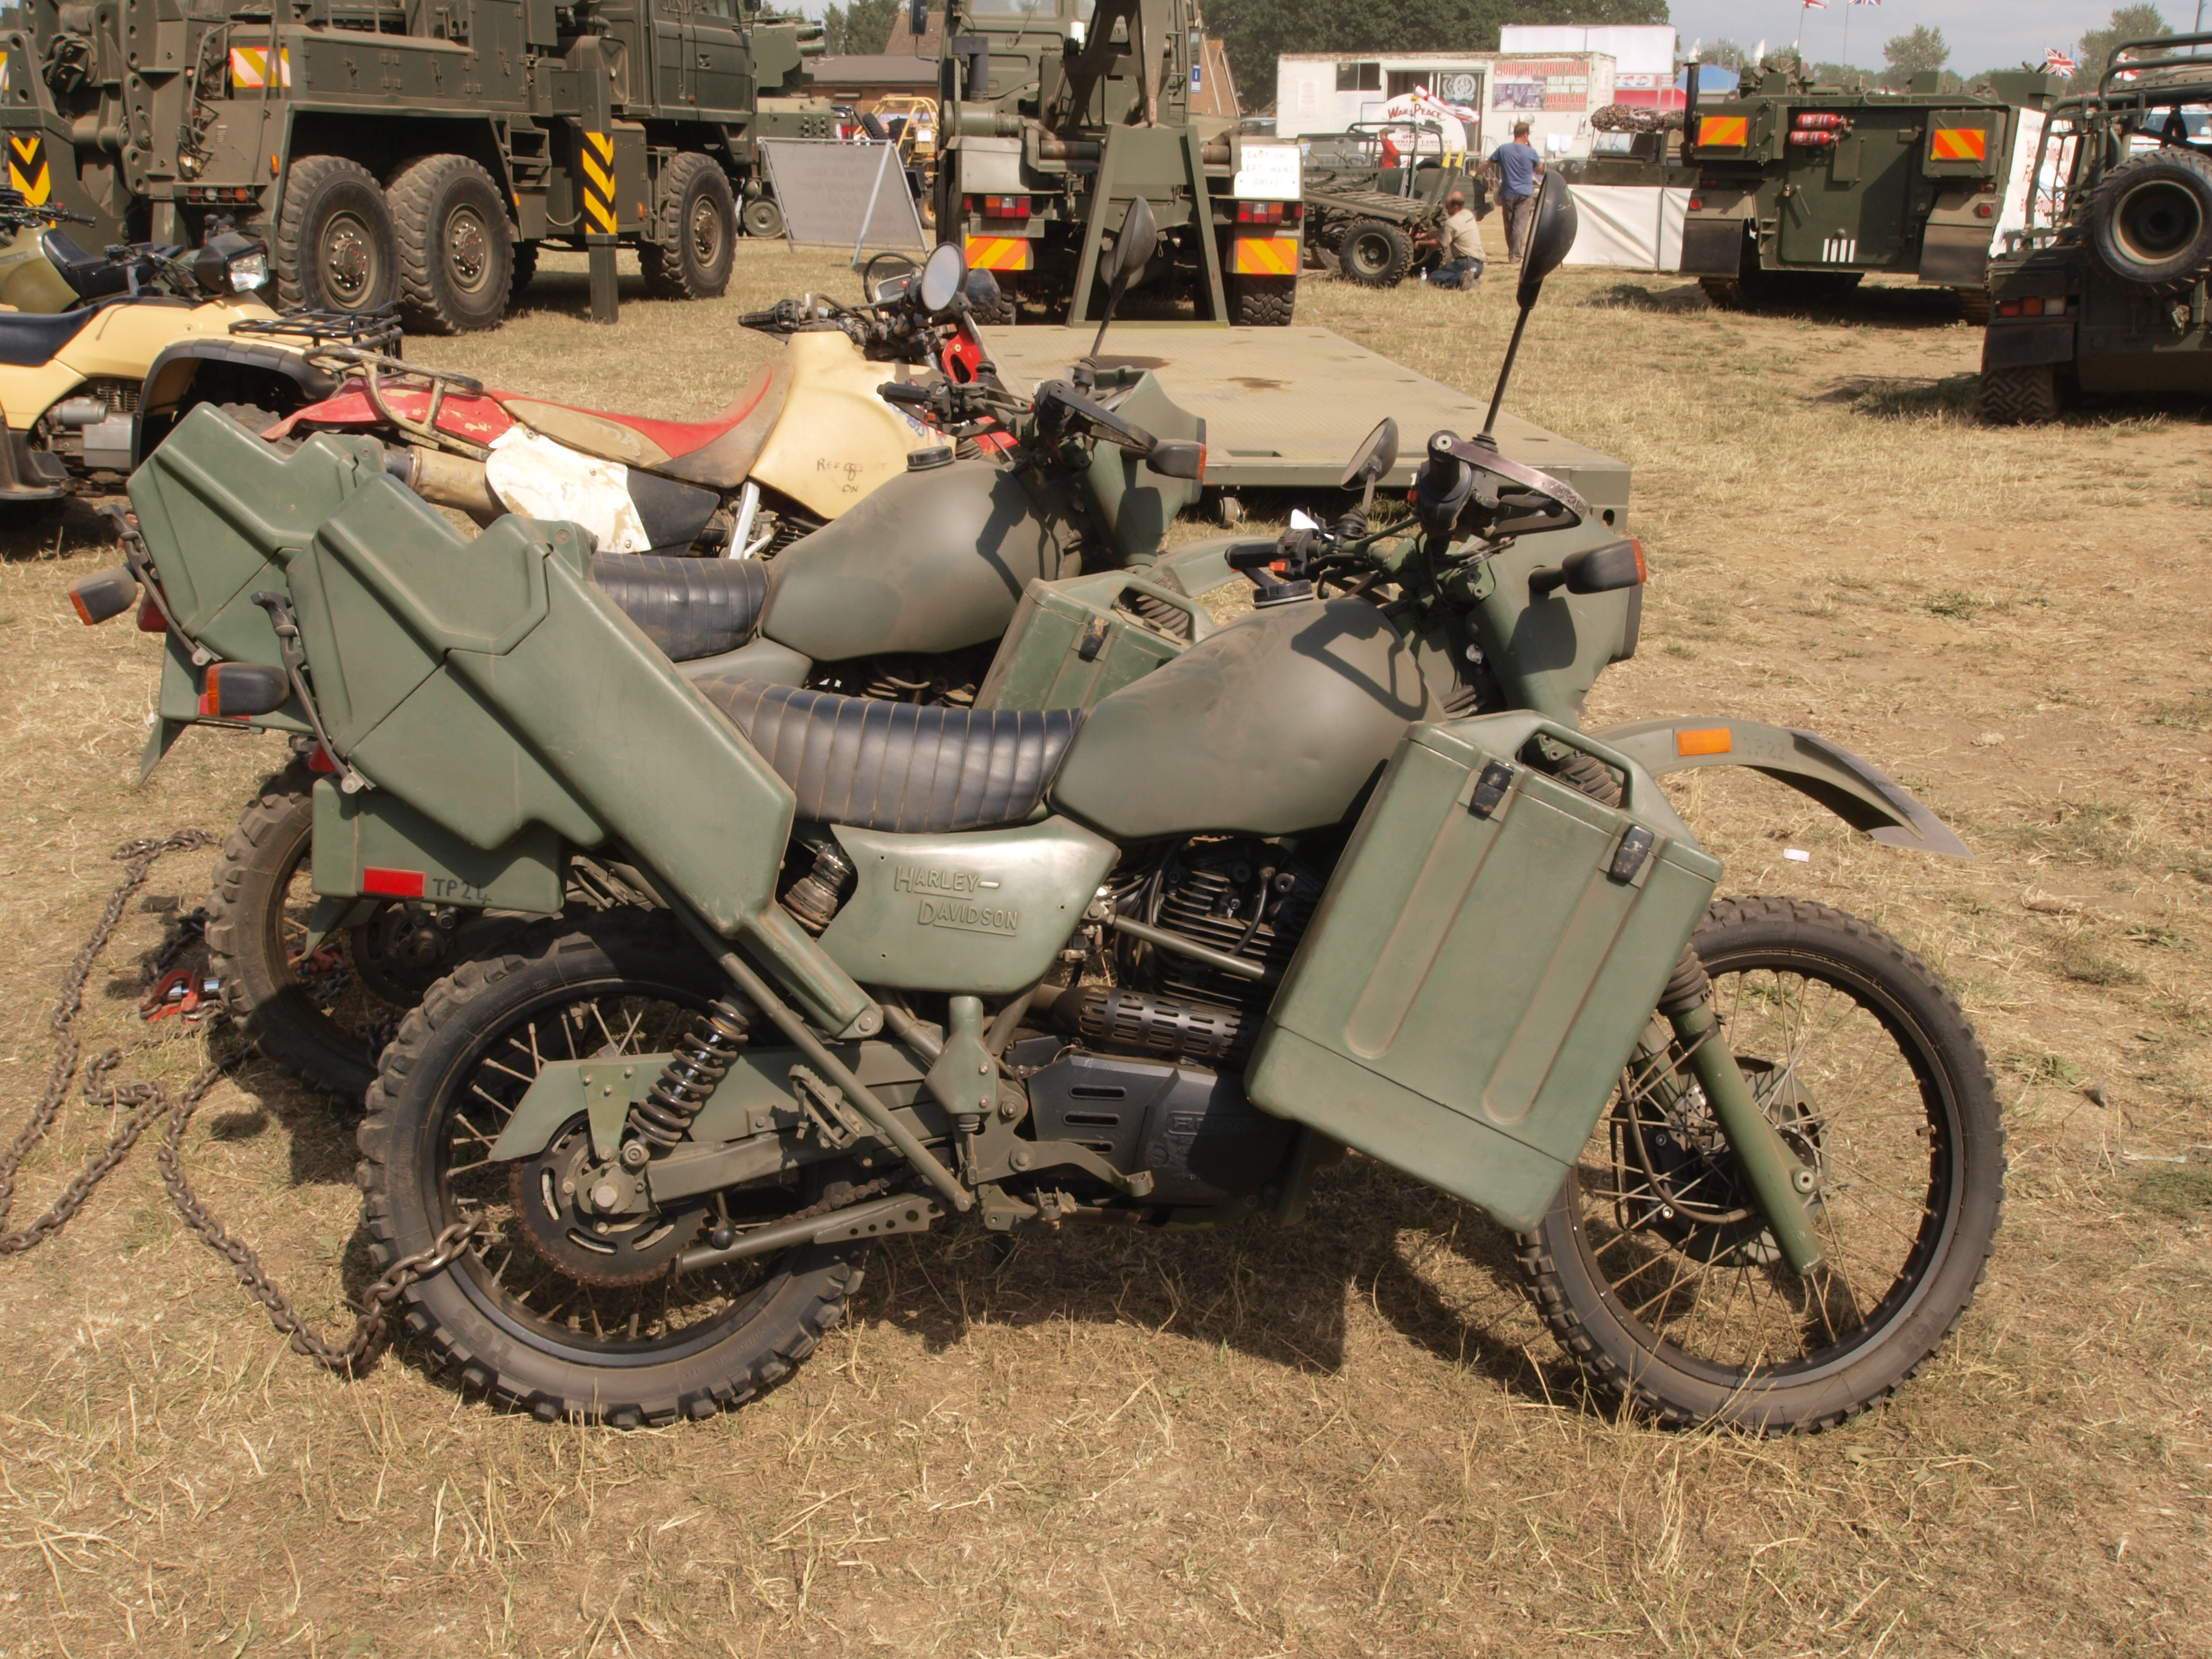 177a705d File:Military Harley Davidson motorcycles.JPG - Wikimedia Commons